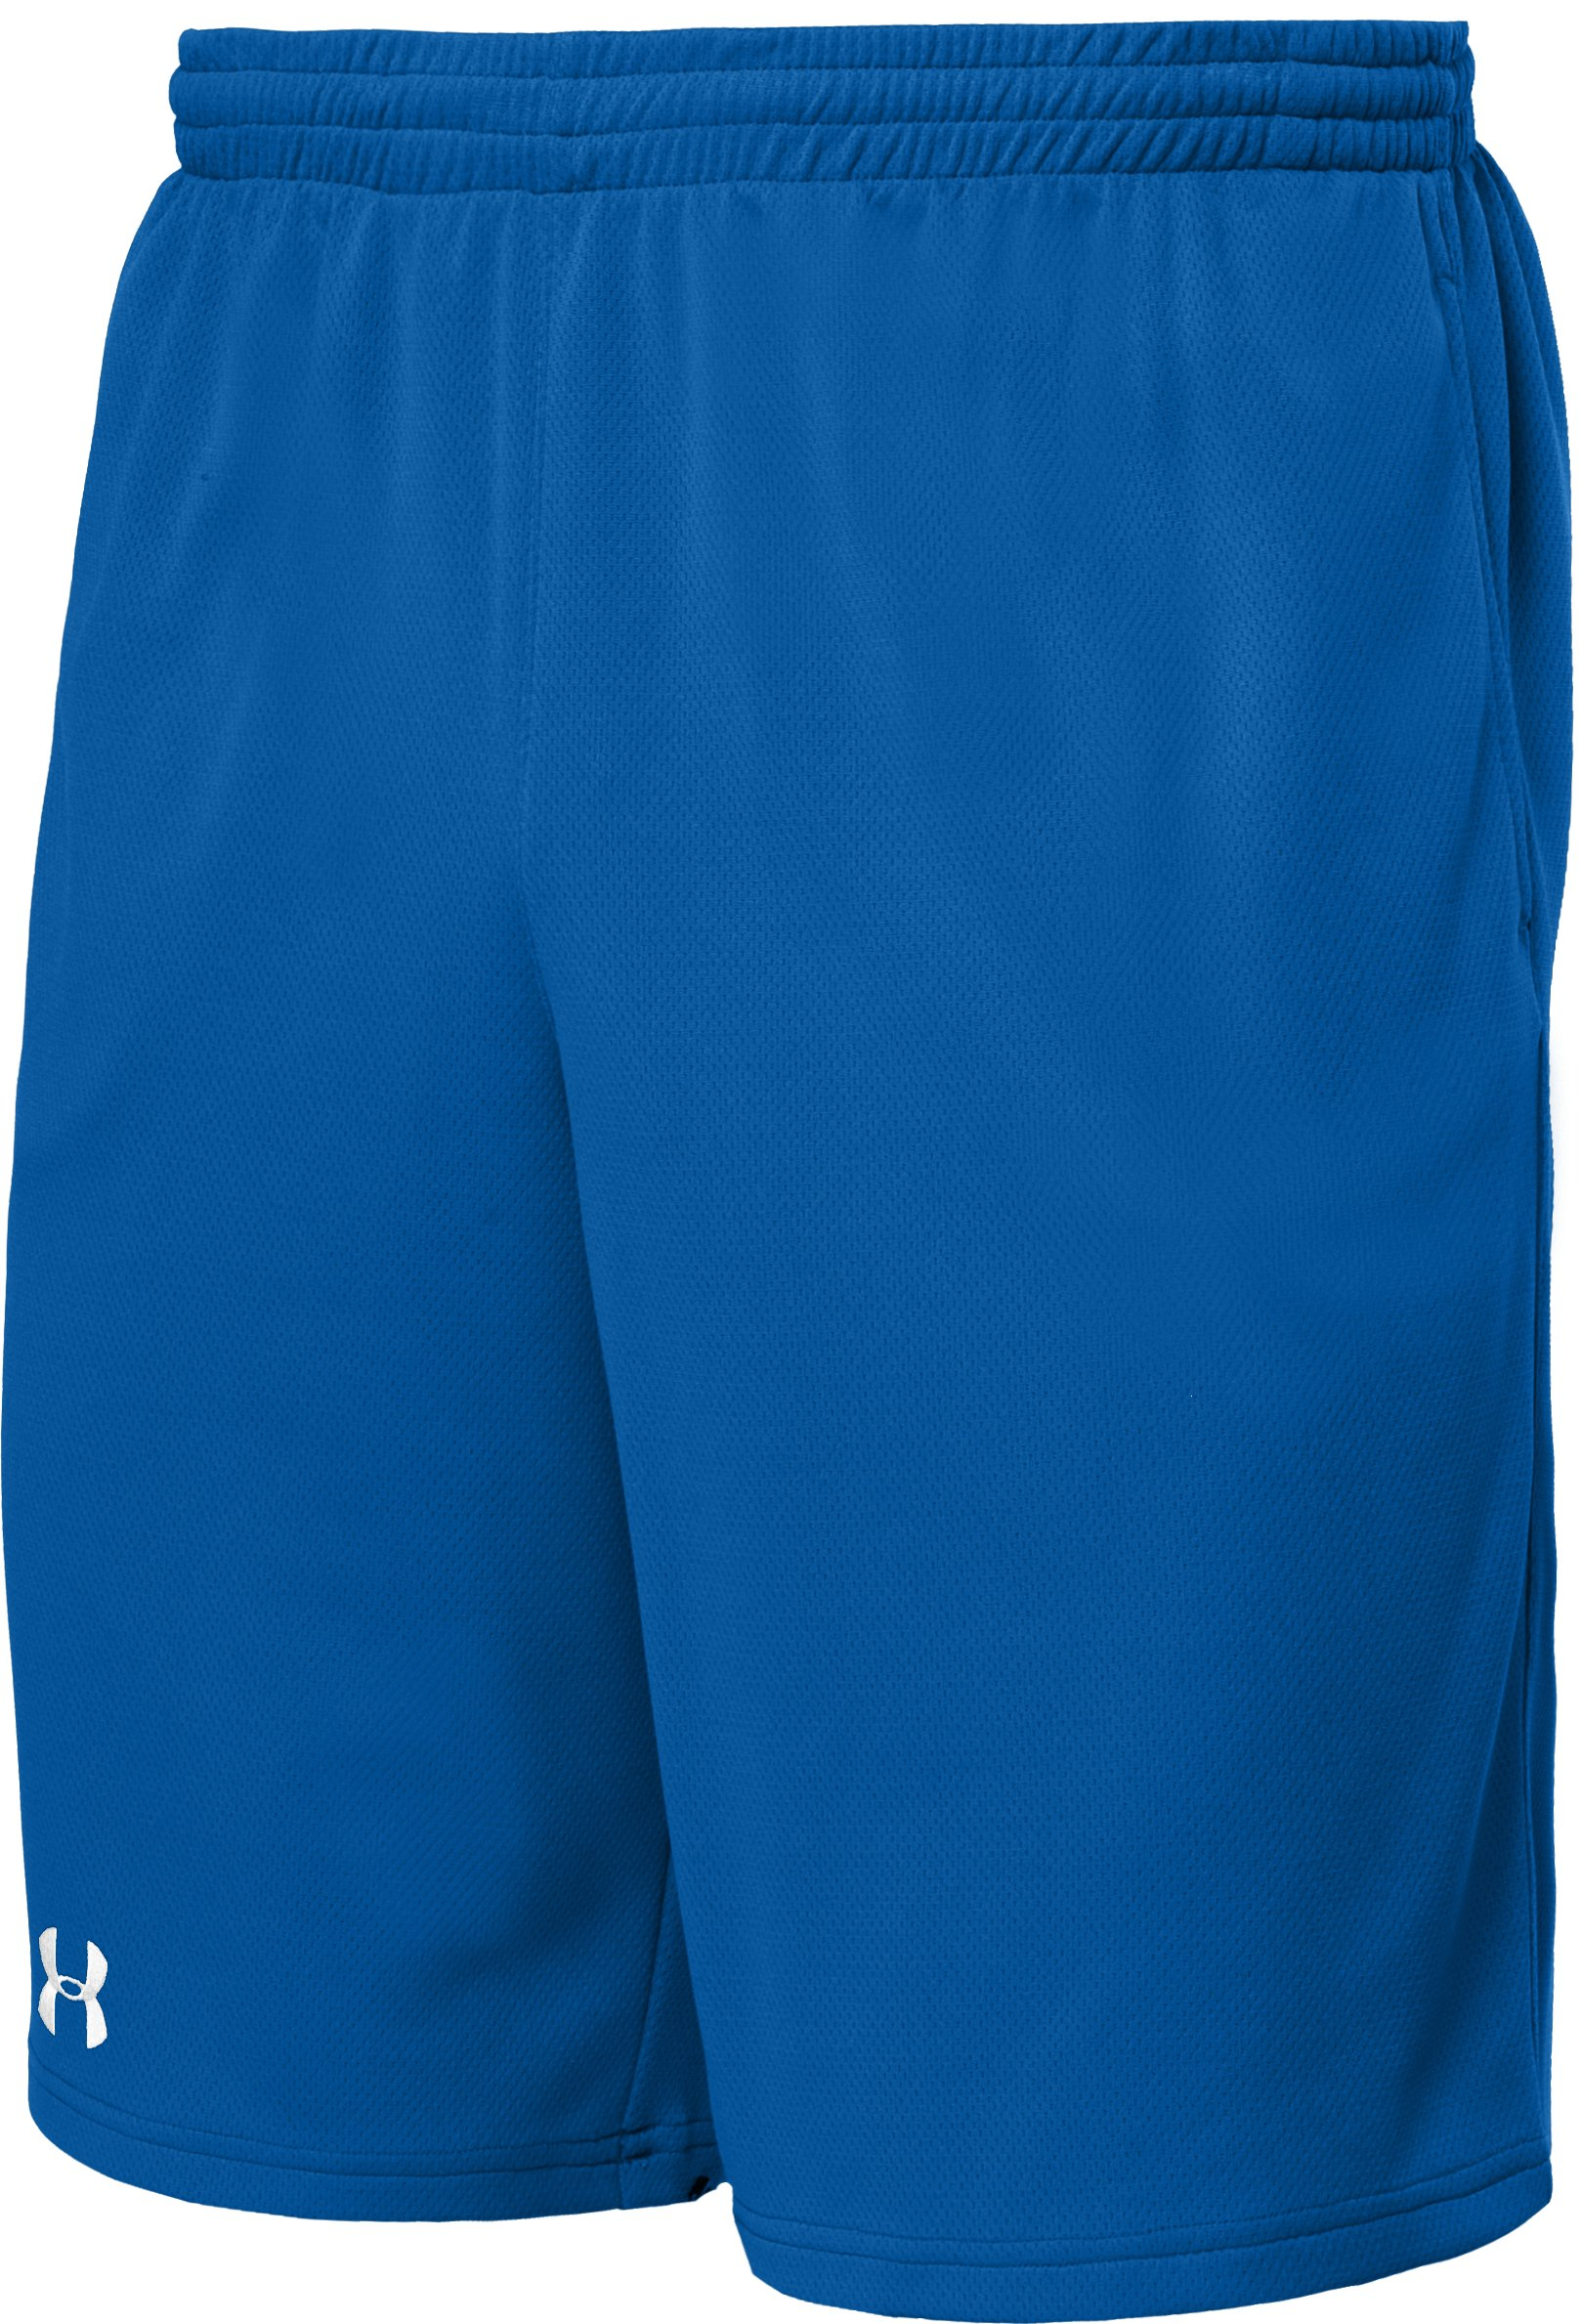 "Men's UA Flex 10"" Shorts, Squadron, zoomed image"